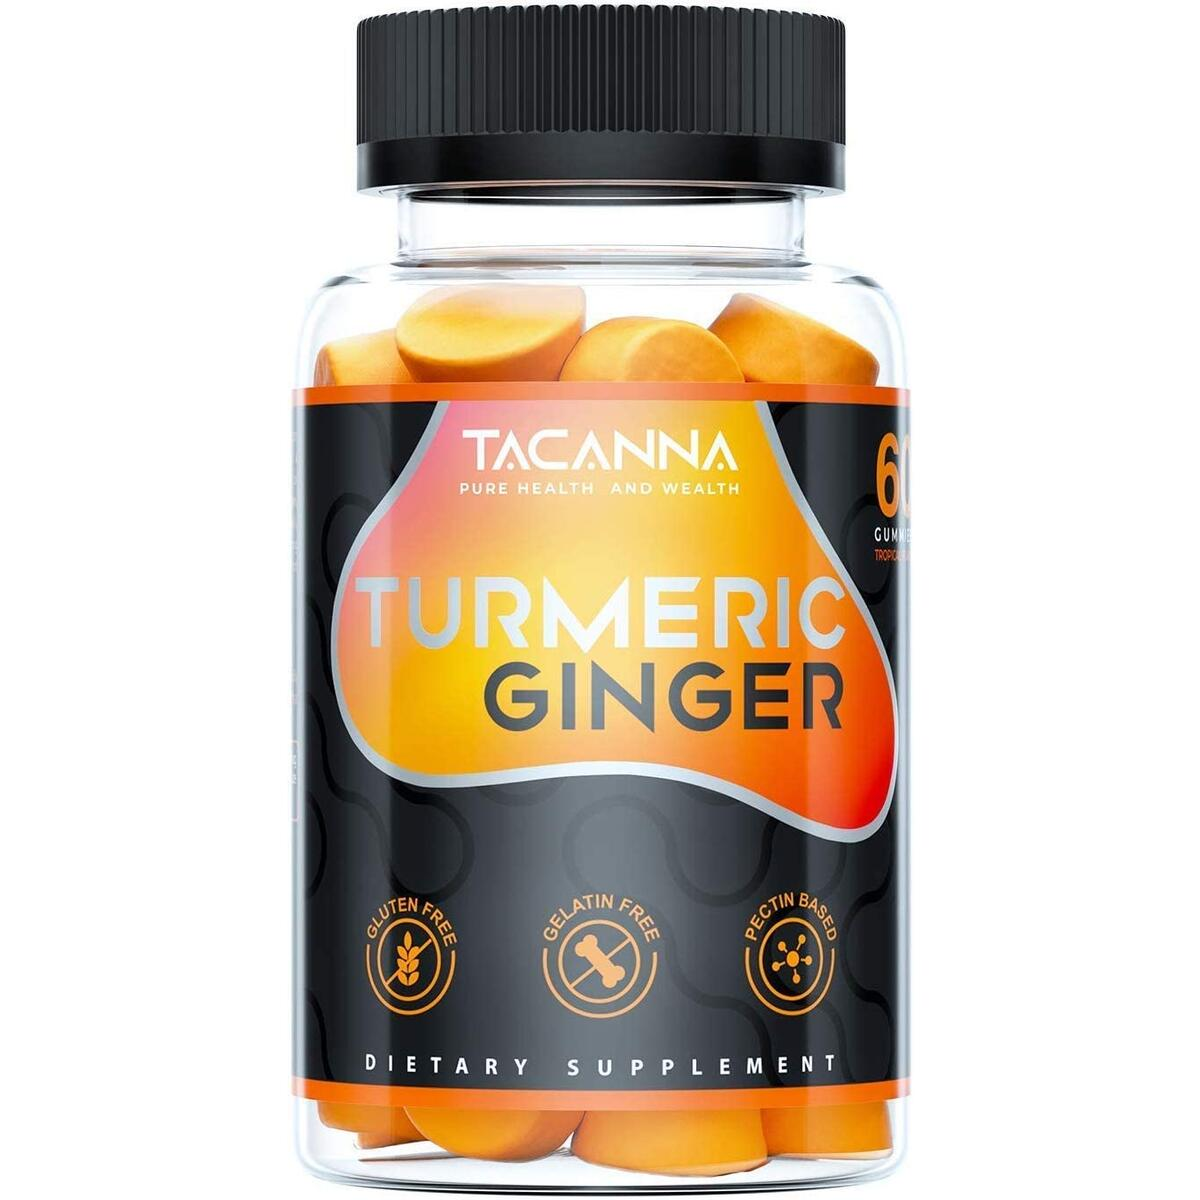 Tacanna Turmeric Ginger Gummies - Curcumin Joint Support - Pain Relief, Antioxidant, Anti-inflammatory. All Natural Factors Chewable Ginger, Turmeric Chews for Adults & Kids, Curcumin 60 Count